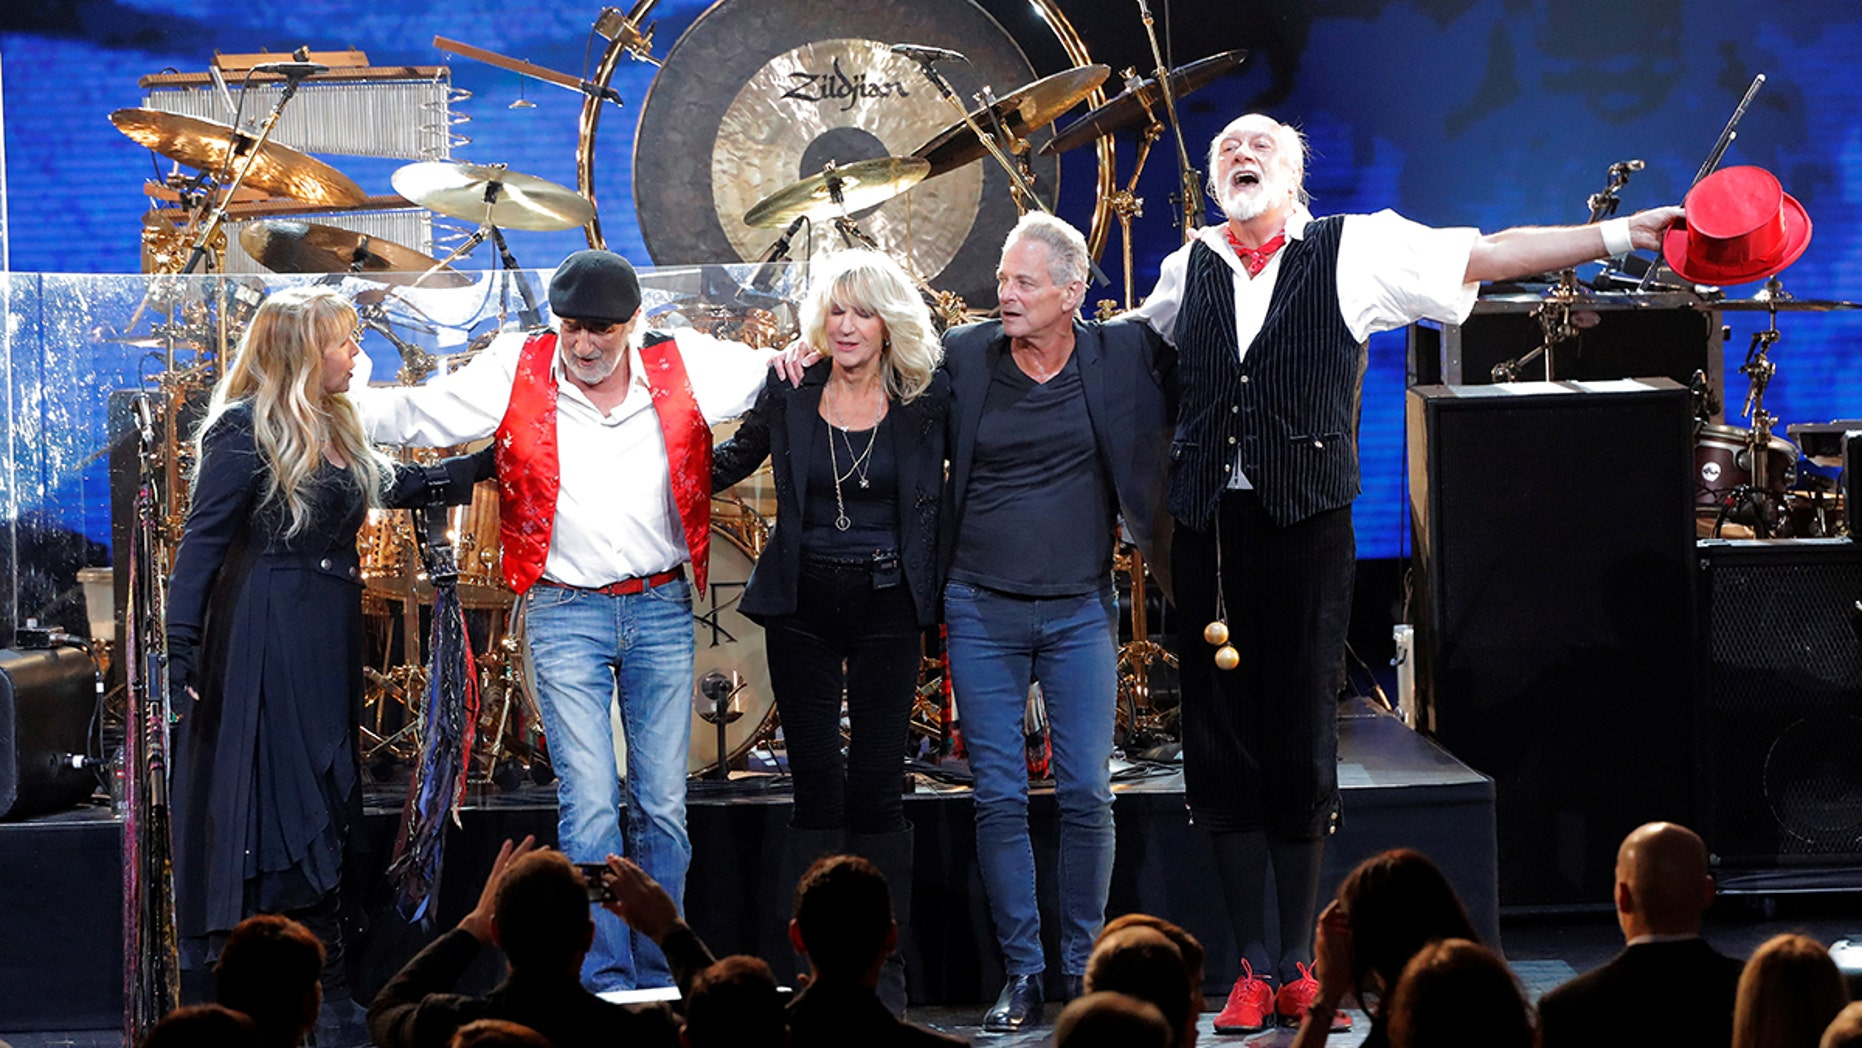 Stevie Nicks, John McVie, Christine McVie, Lindsey Buckingham, and Mick Fleetwood of the group Fleetwood Mac react after performing during the 2018 MusiCares Person of the Year show honoring Fleetwood Mac at Radio City Music Hall in Manhattan. Buckhingham is now suing his former bandmates for kicking off thier tour. <br>